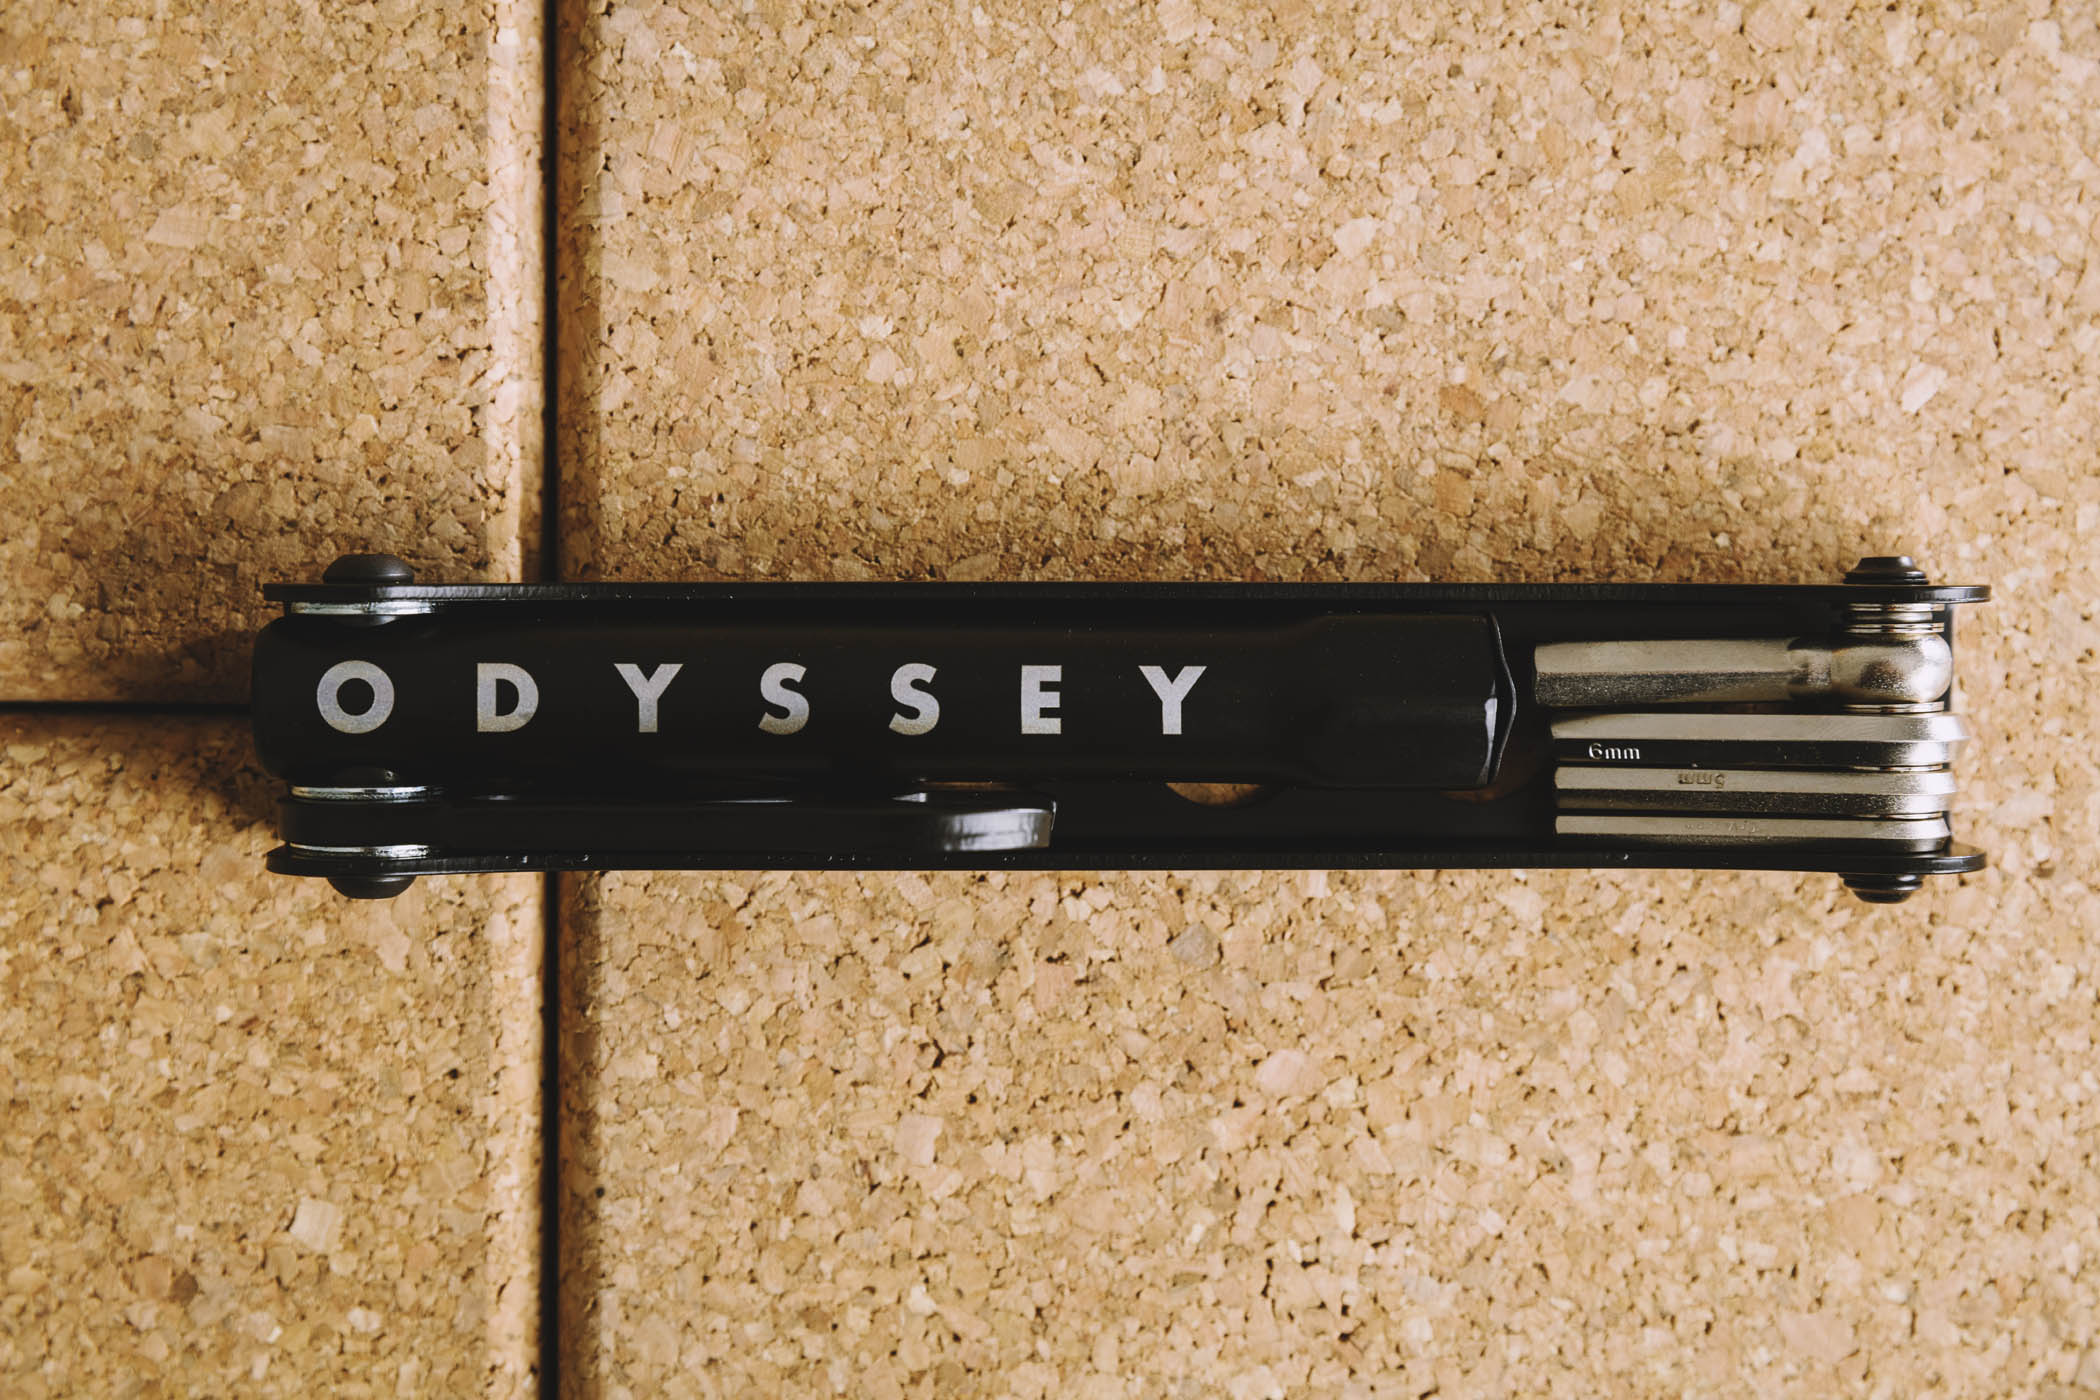 ODYSSEY TRAVEL TOOL – REVIEW